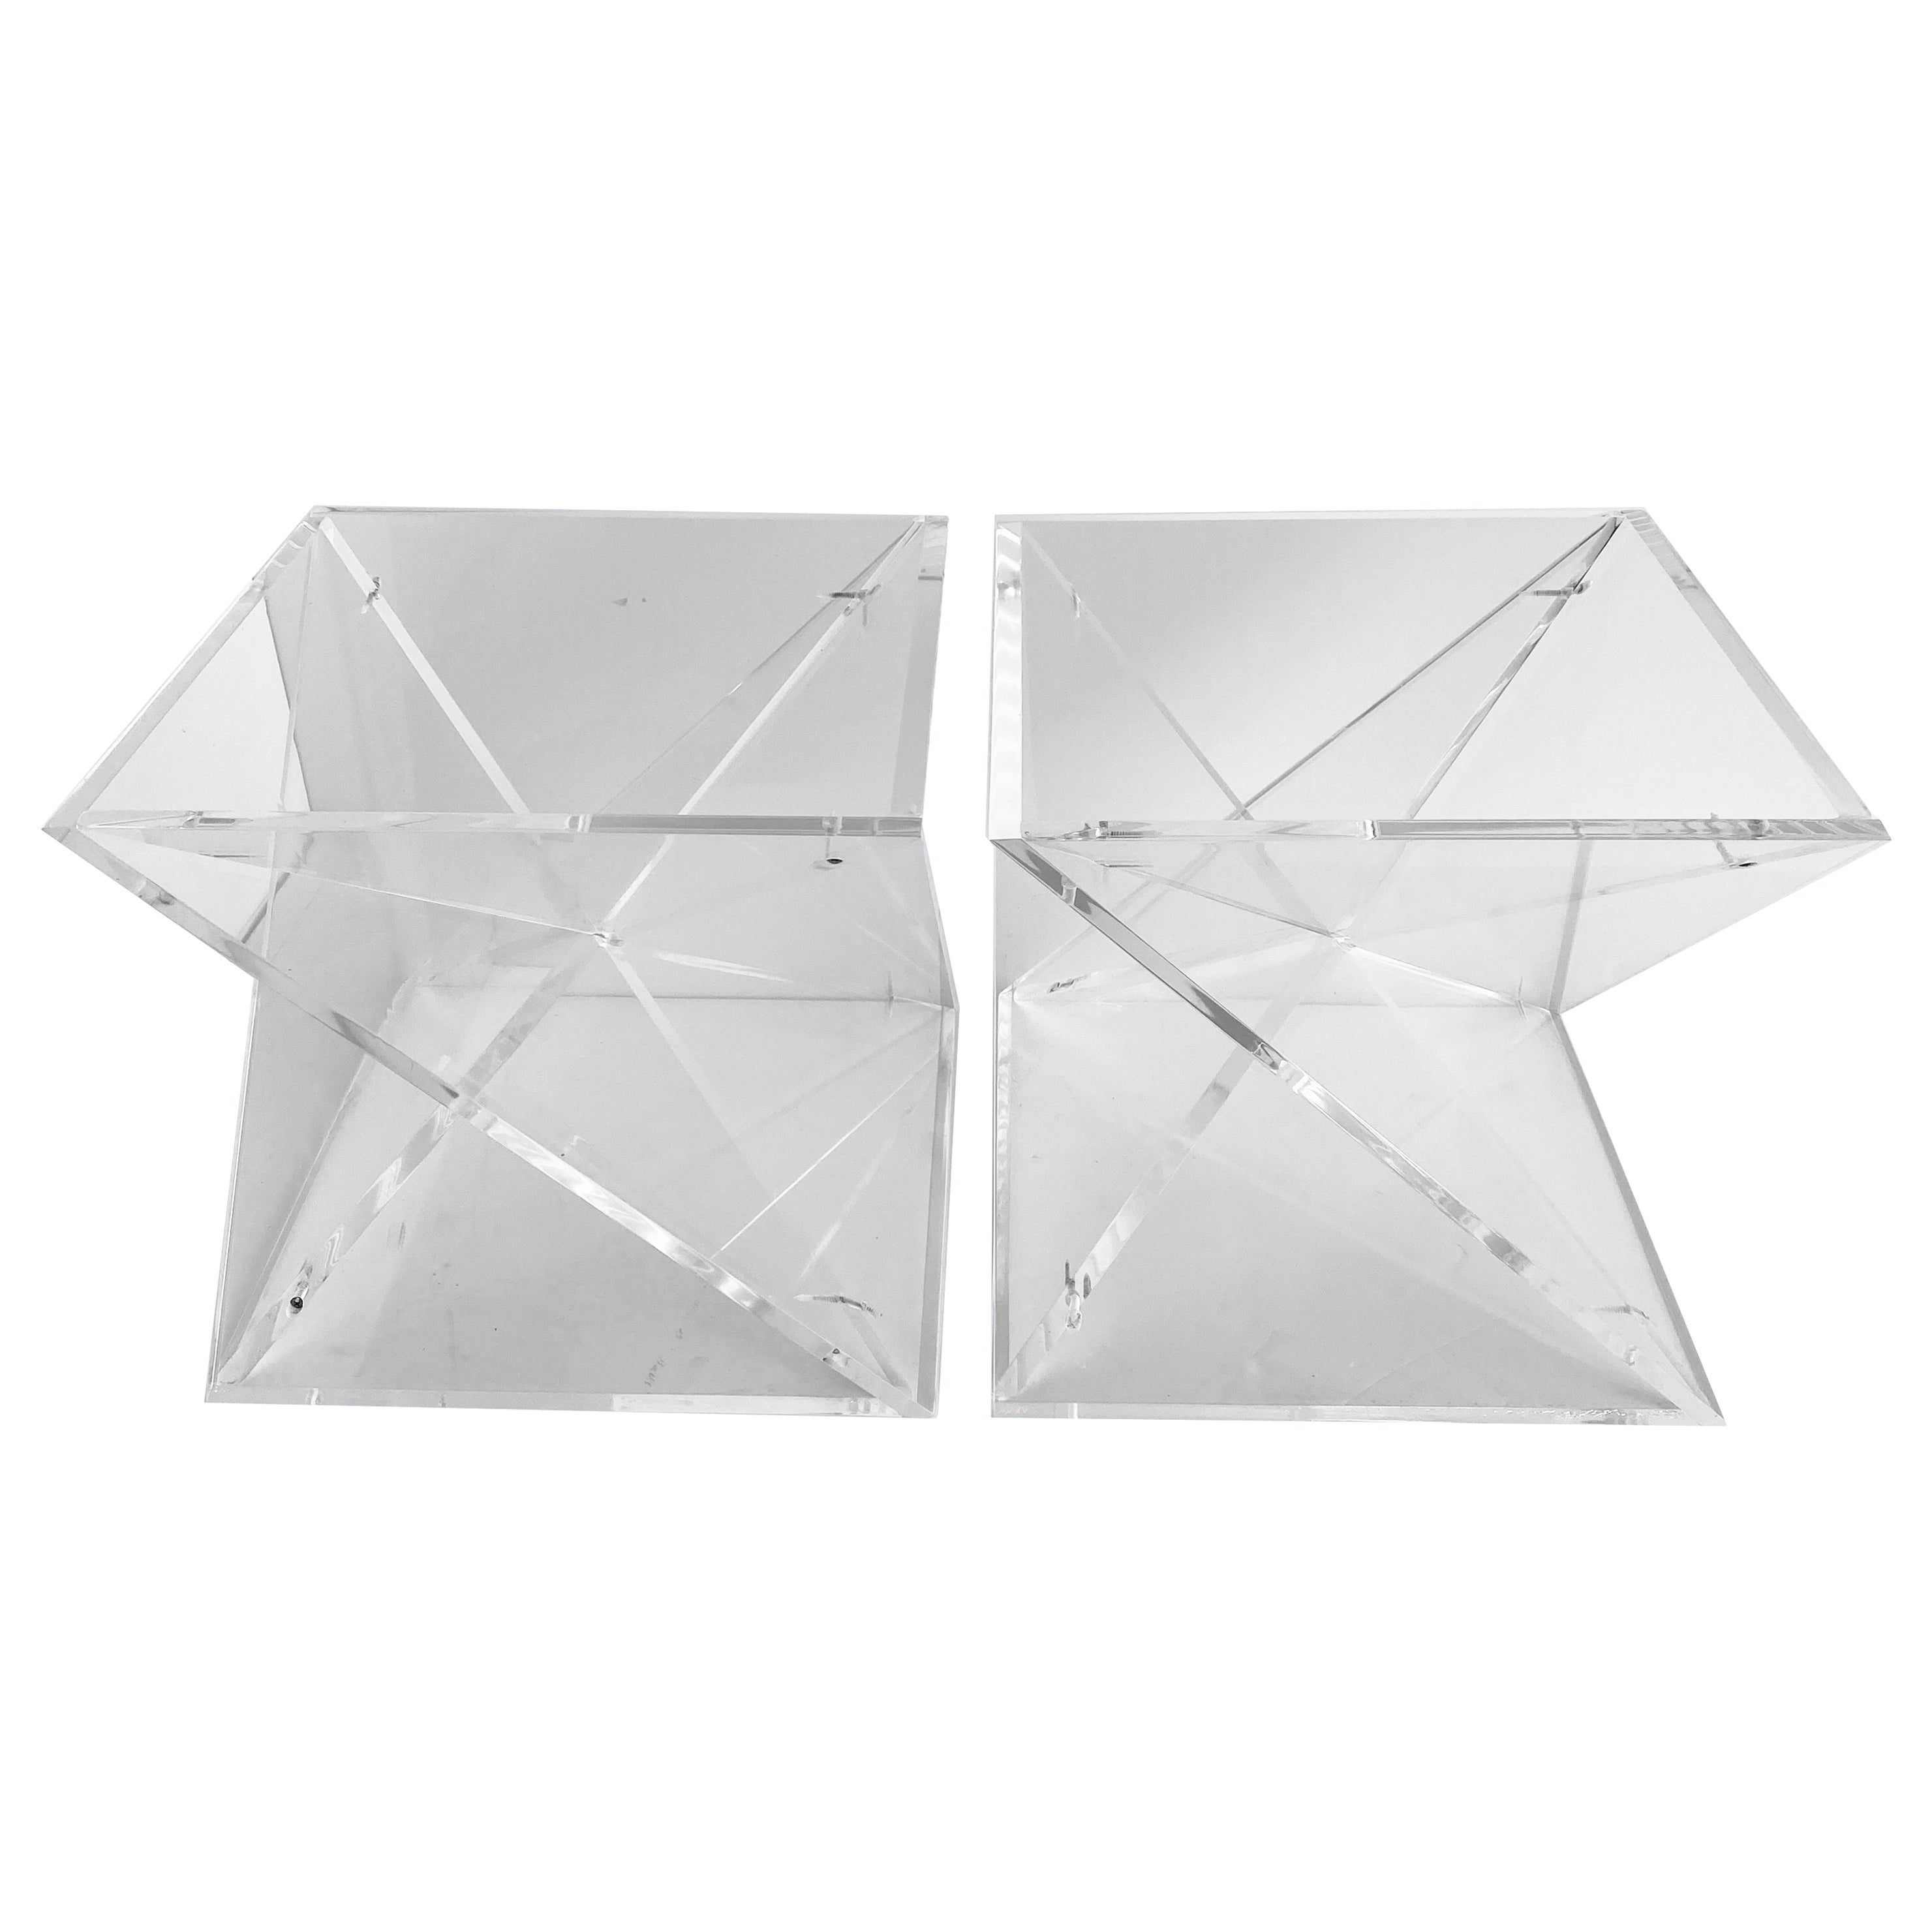 Pair of Small Square Mid-Century Modern Lucite Side Table Bases